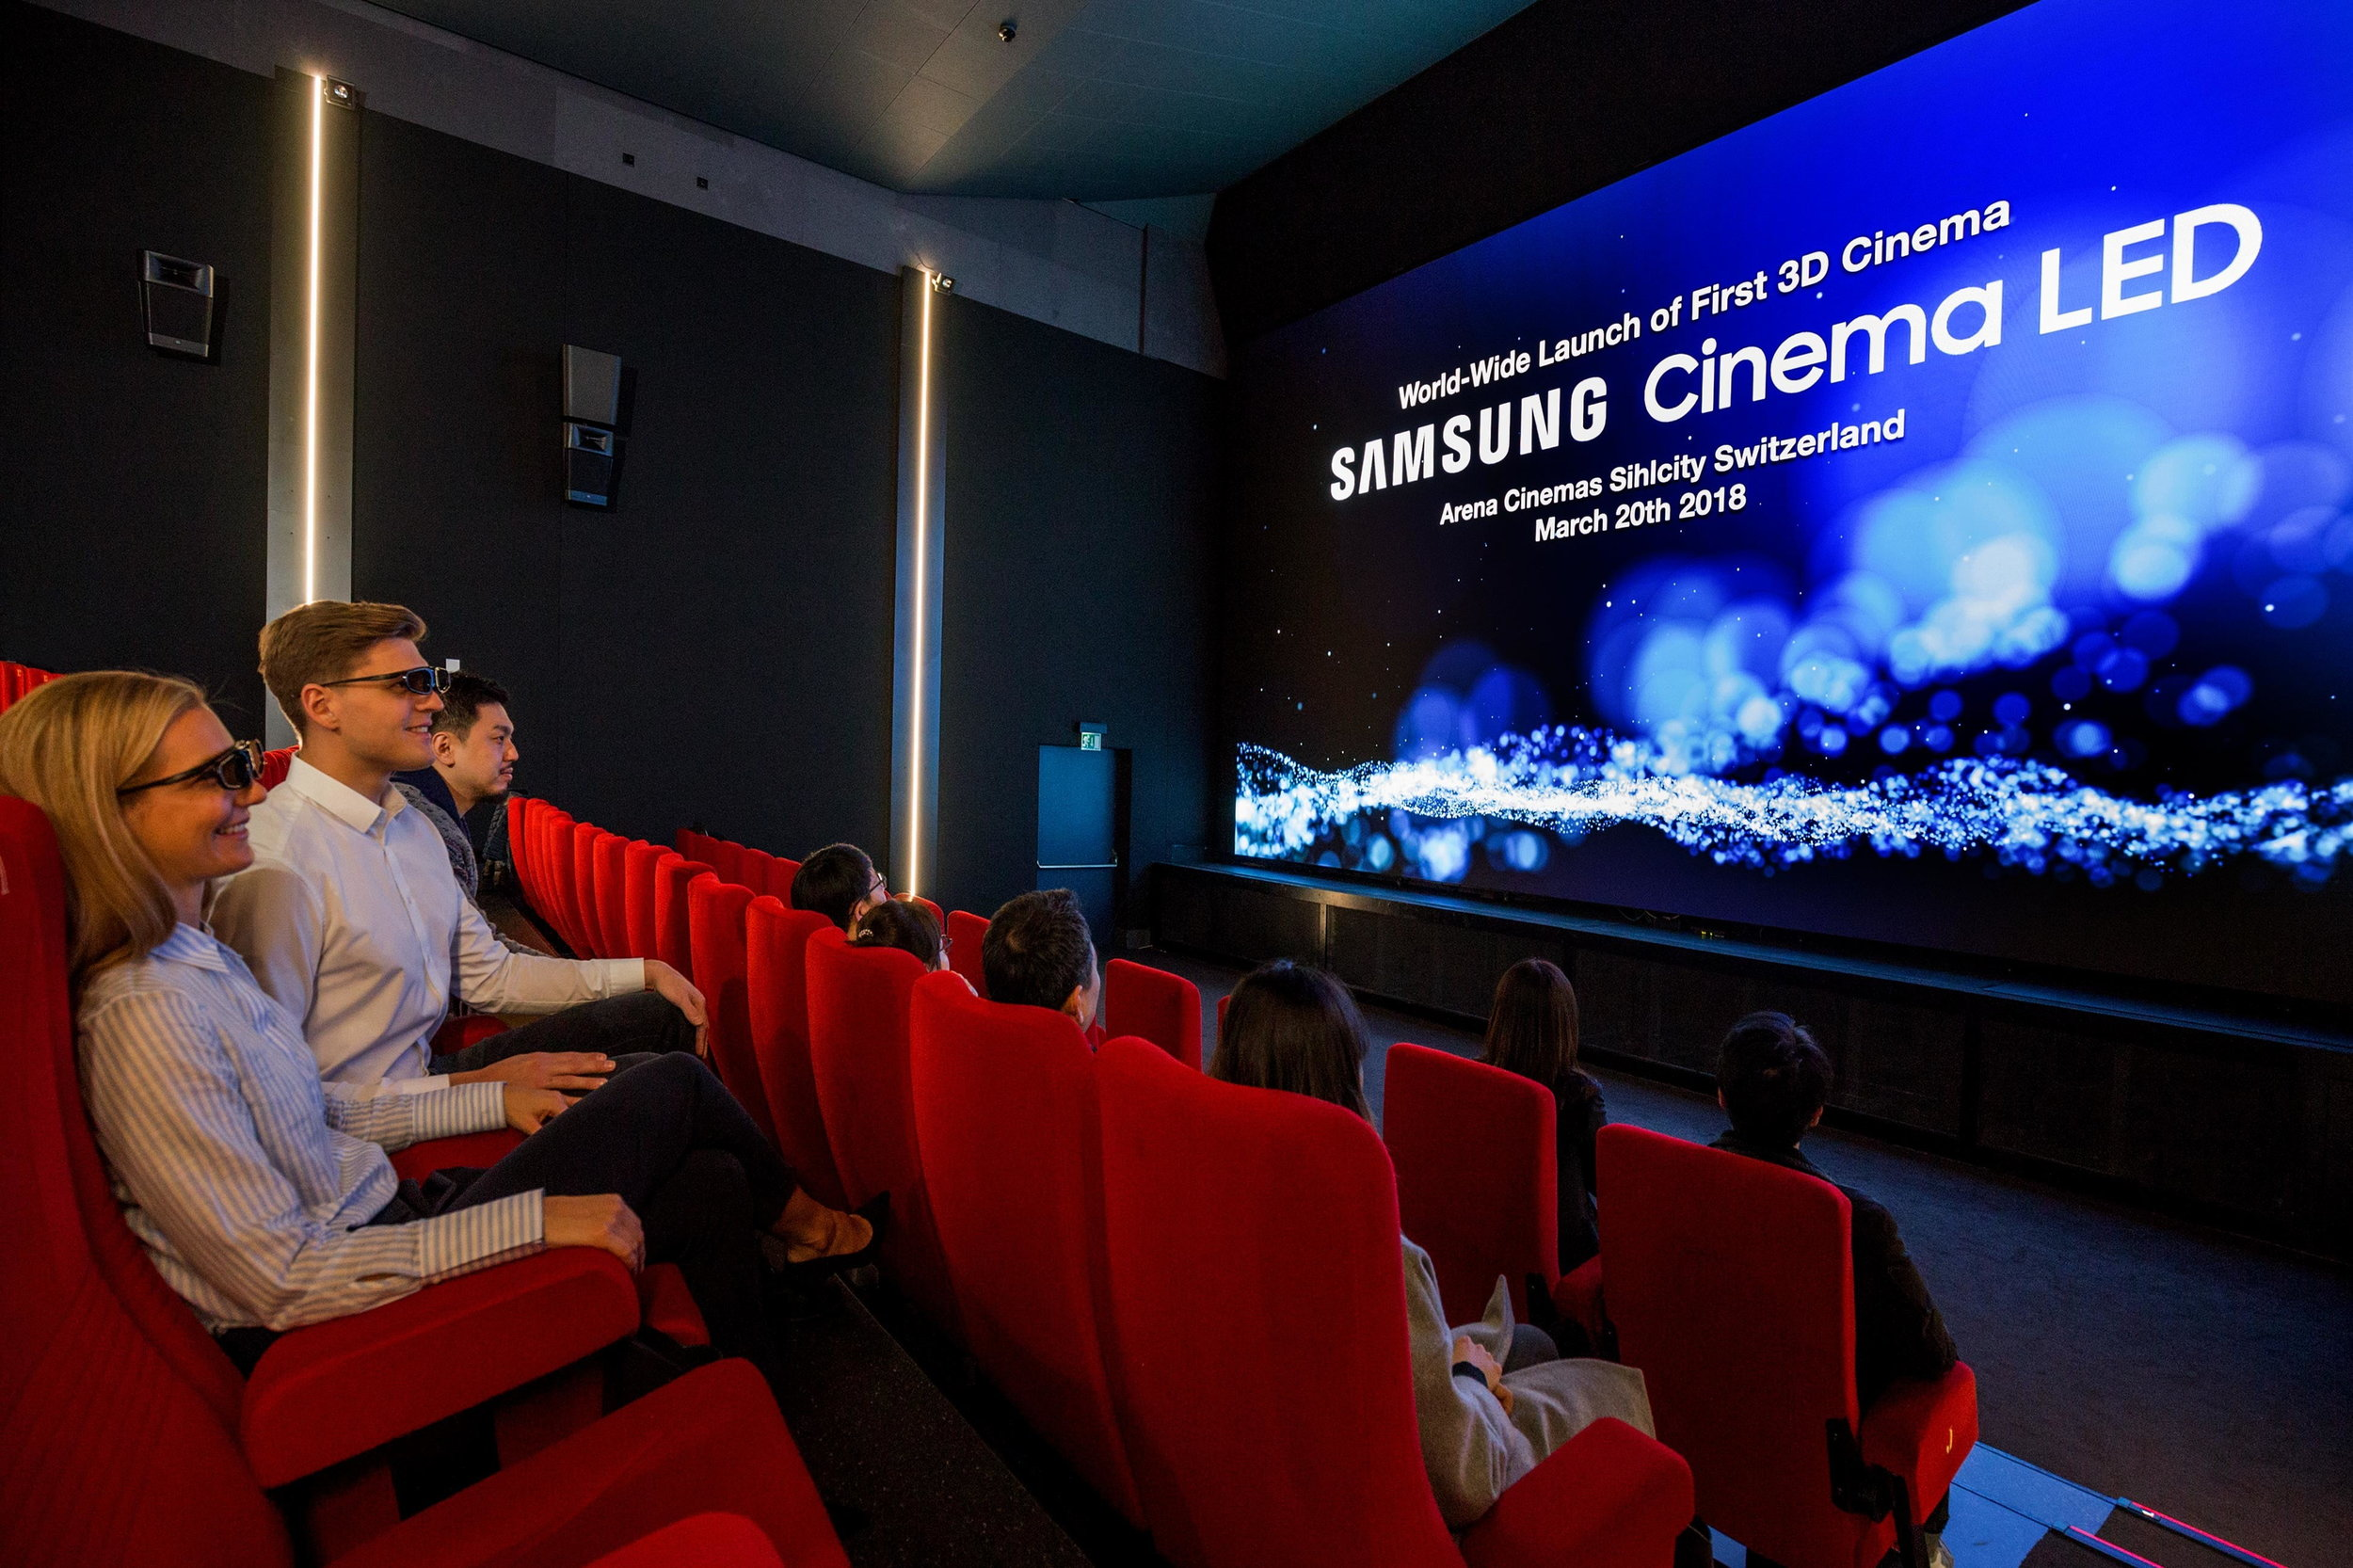 Samsung Cinema LED Technology